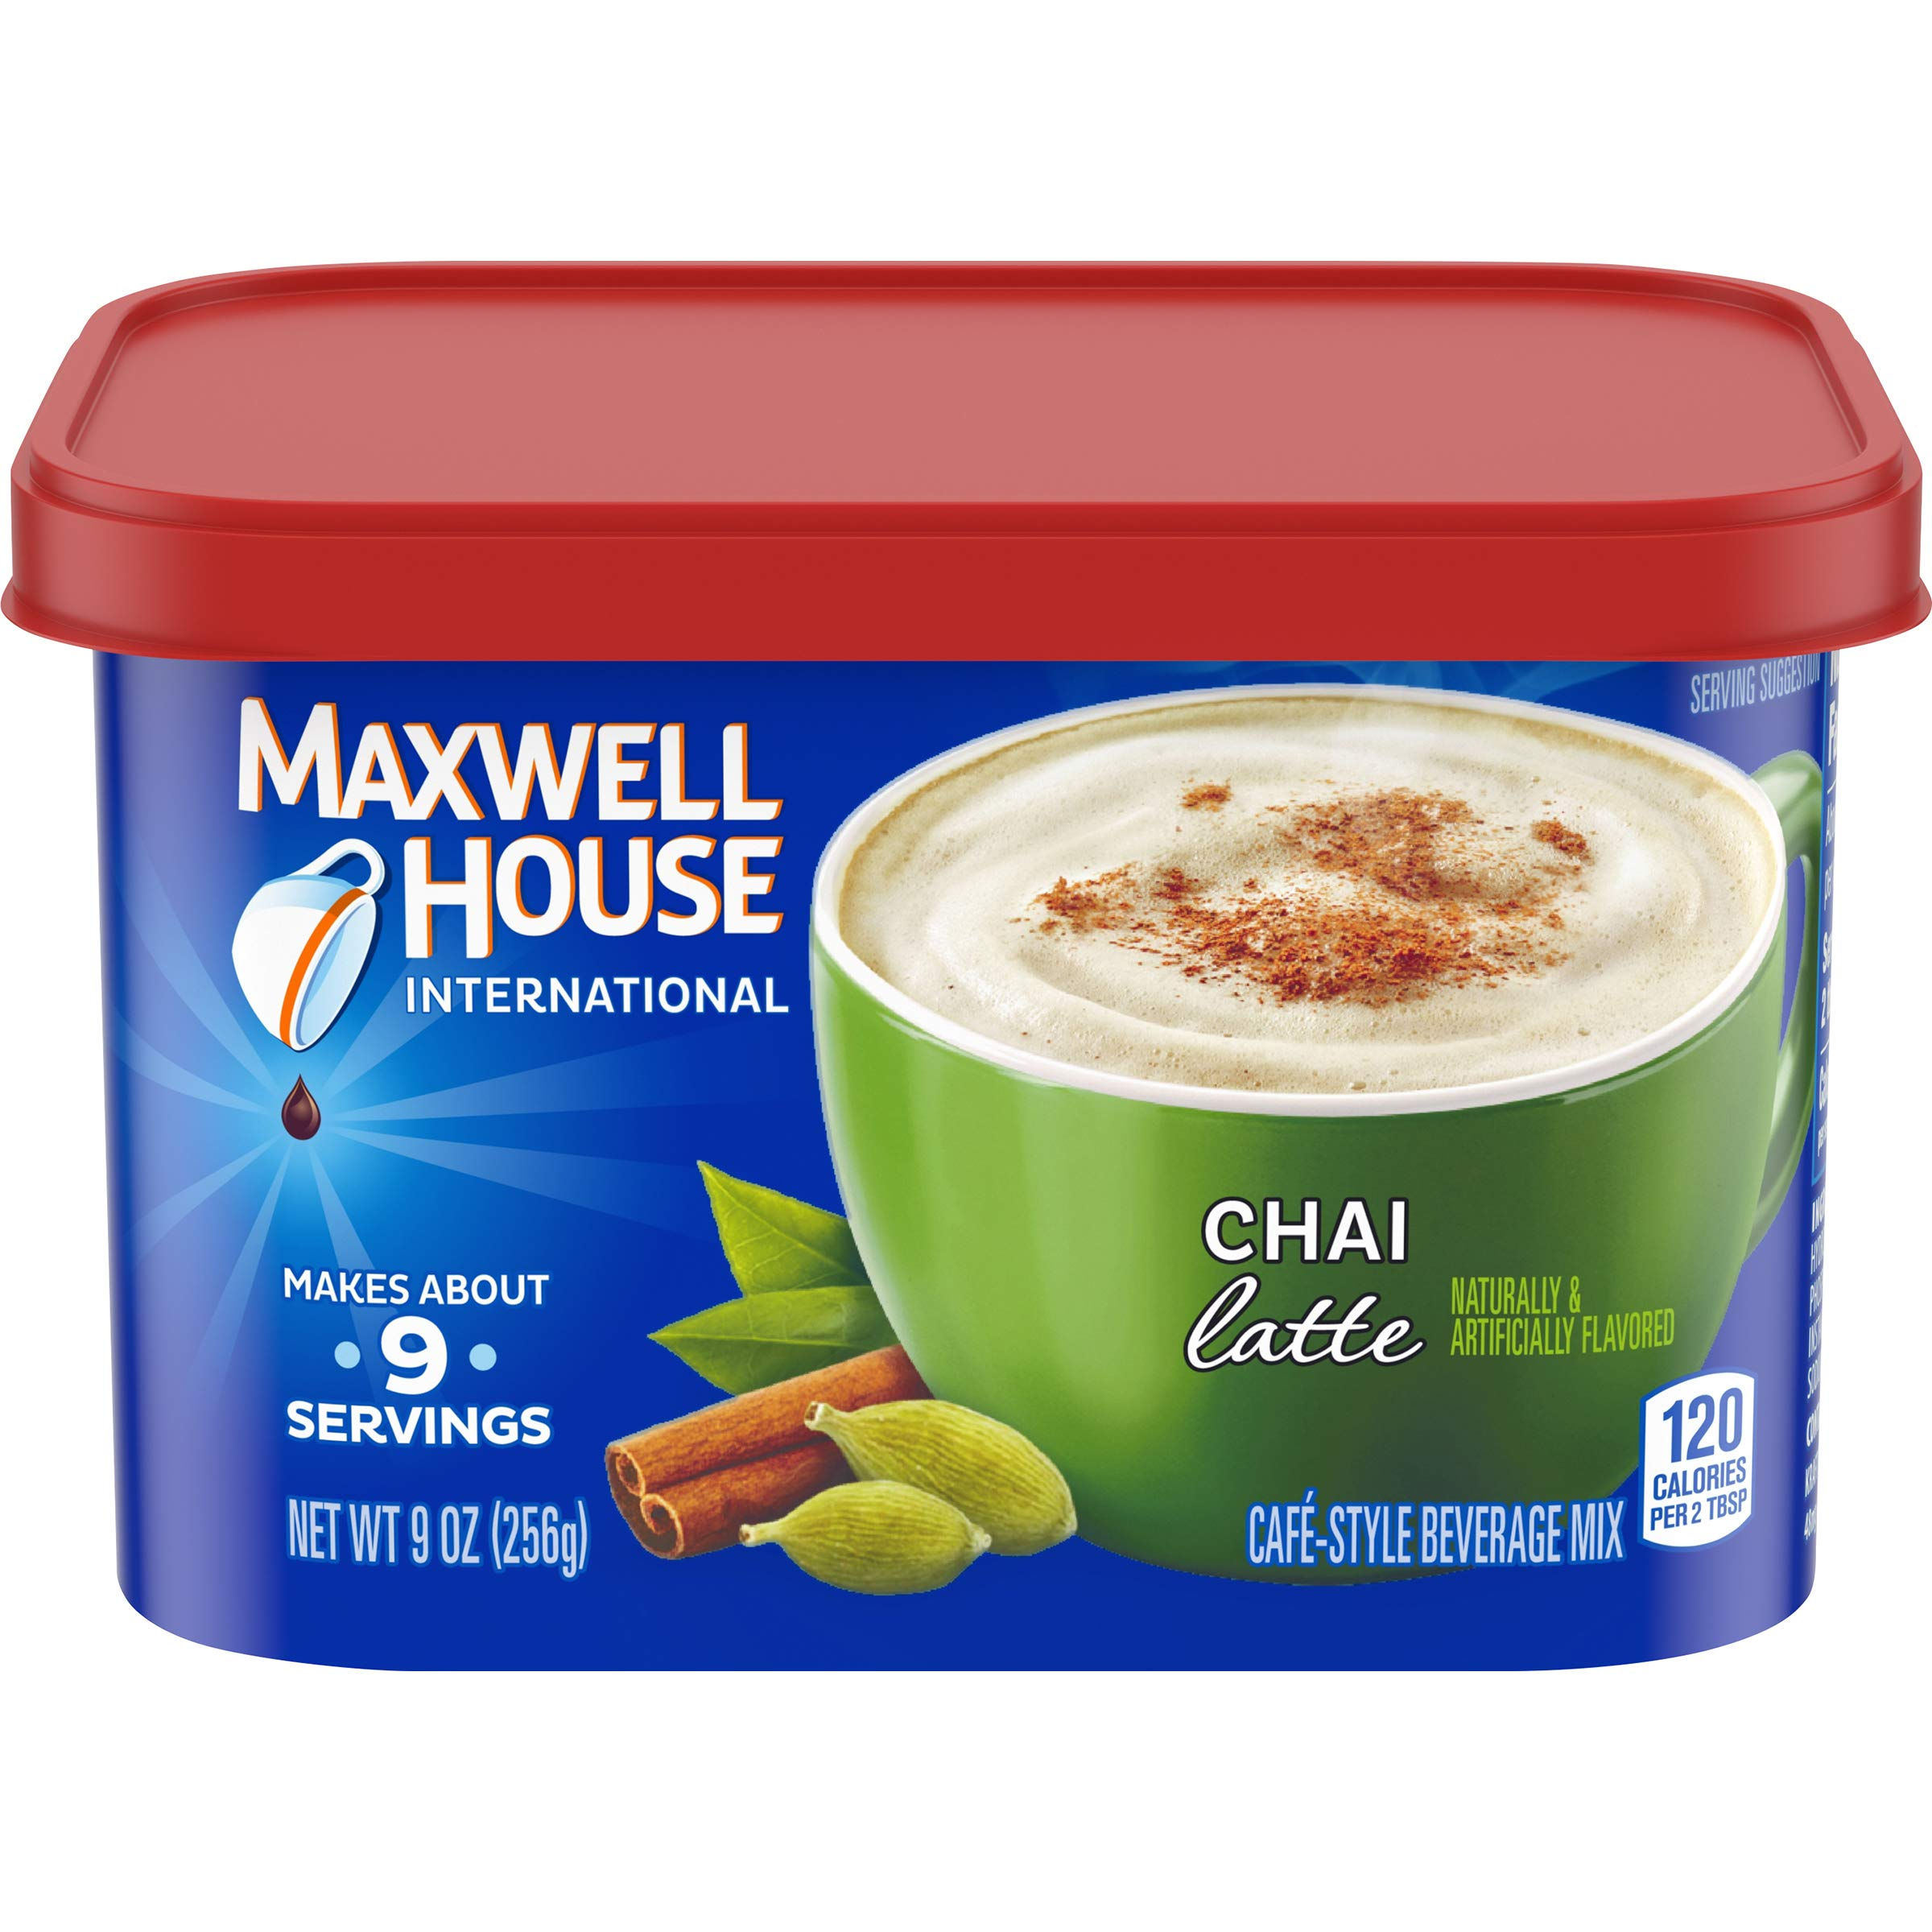 Maxwell House International Chai Latte Coffee Beverage Mix, 9 oz Canister (Pack of 4)